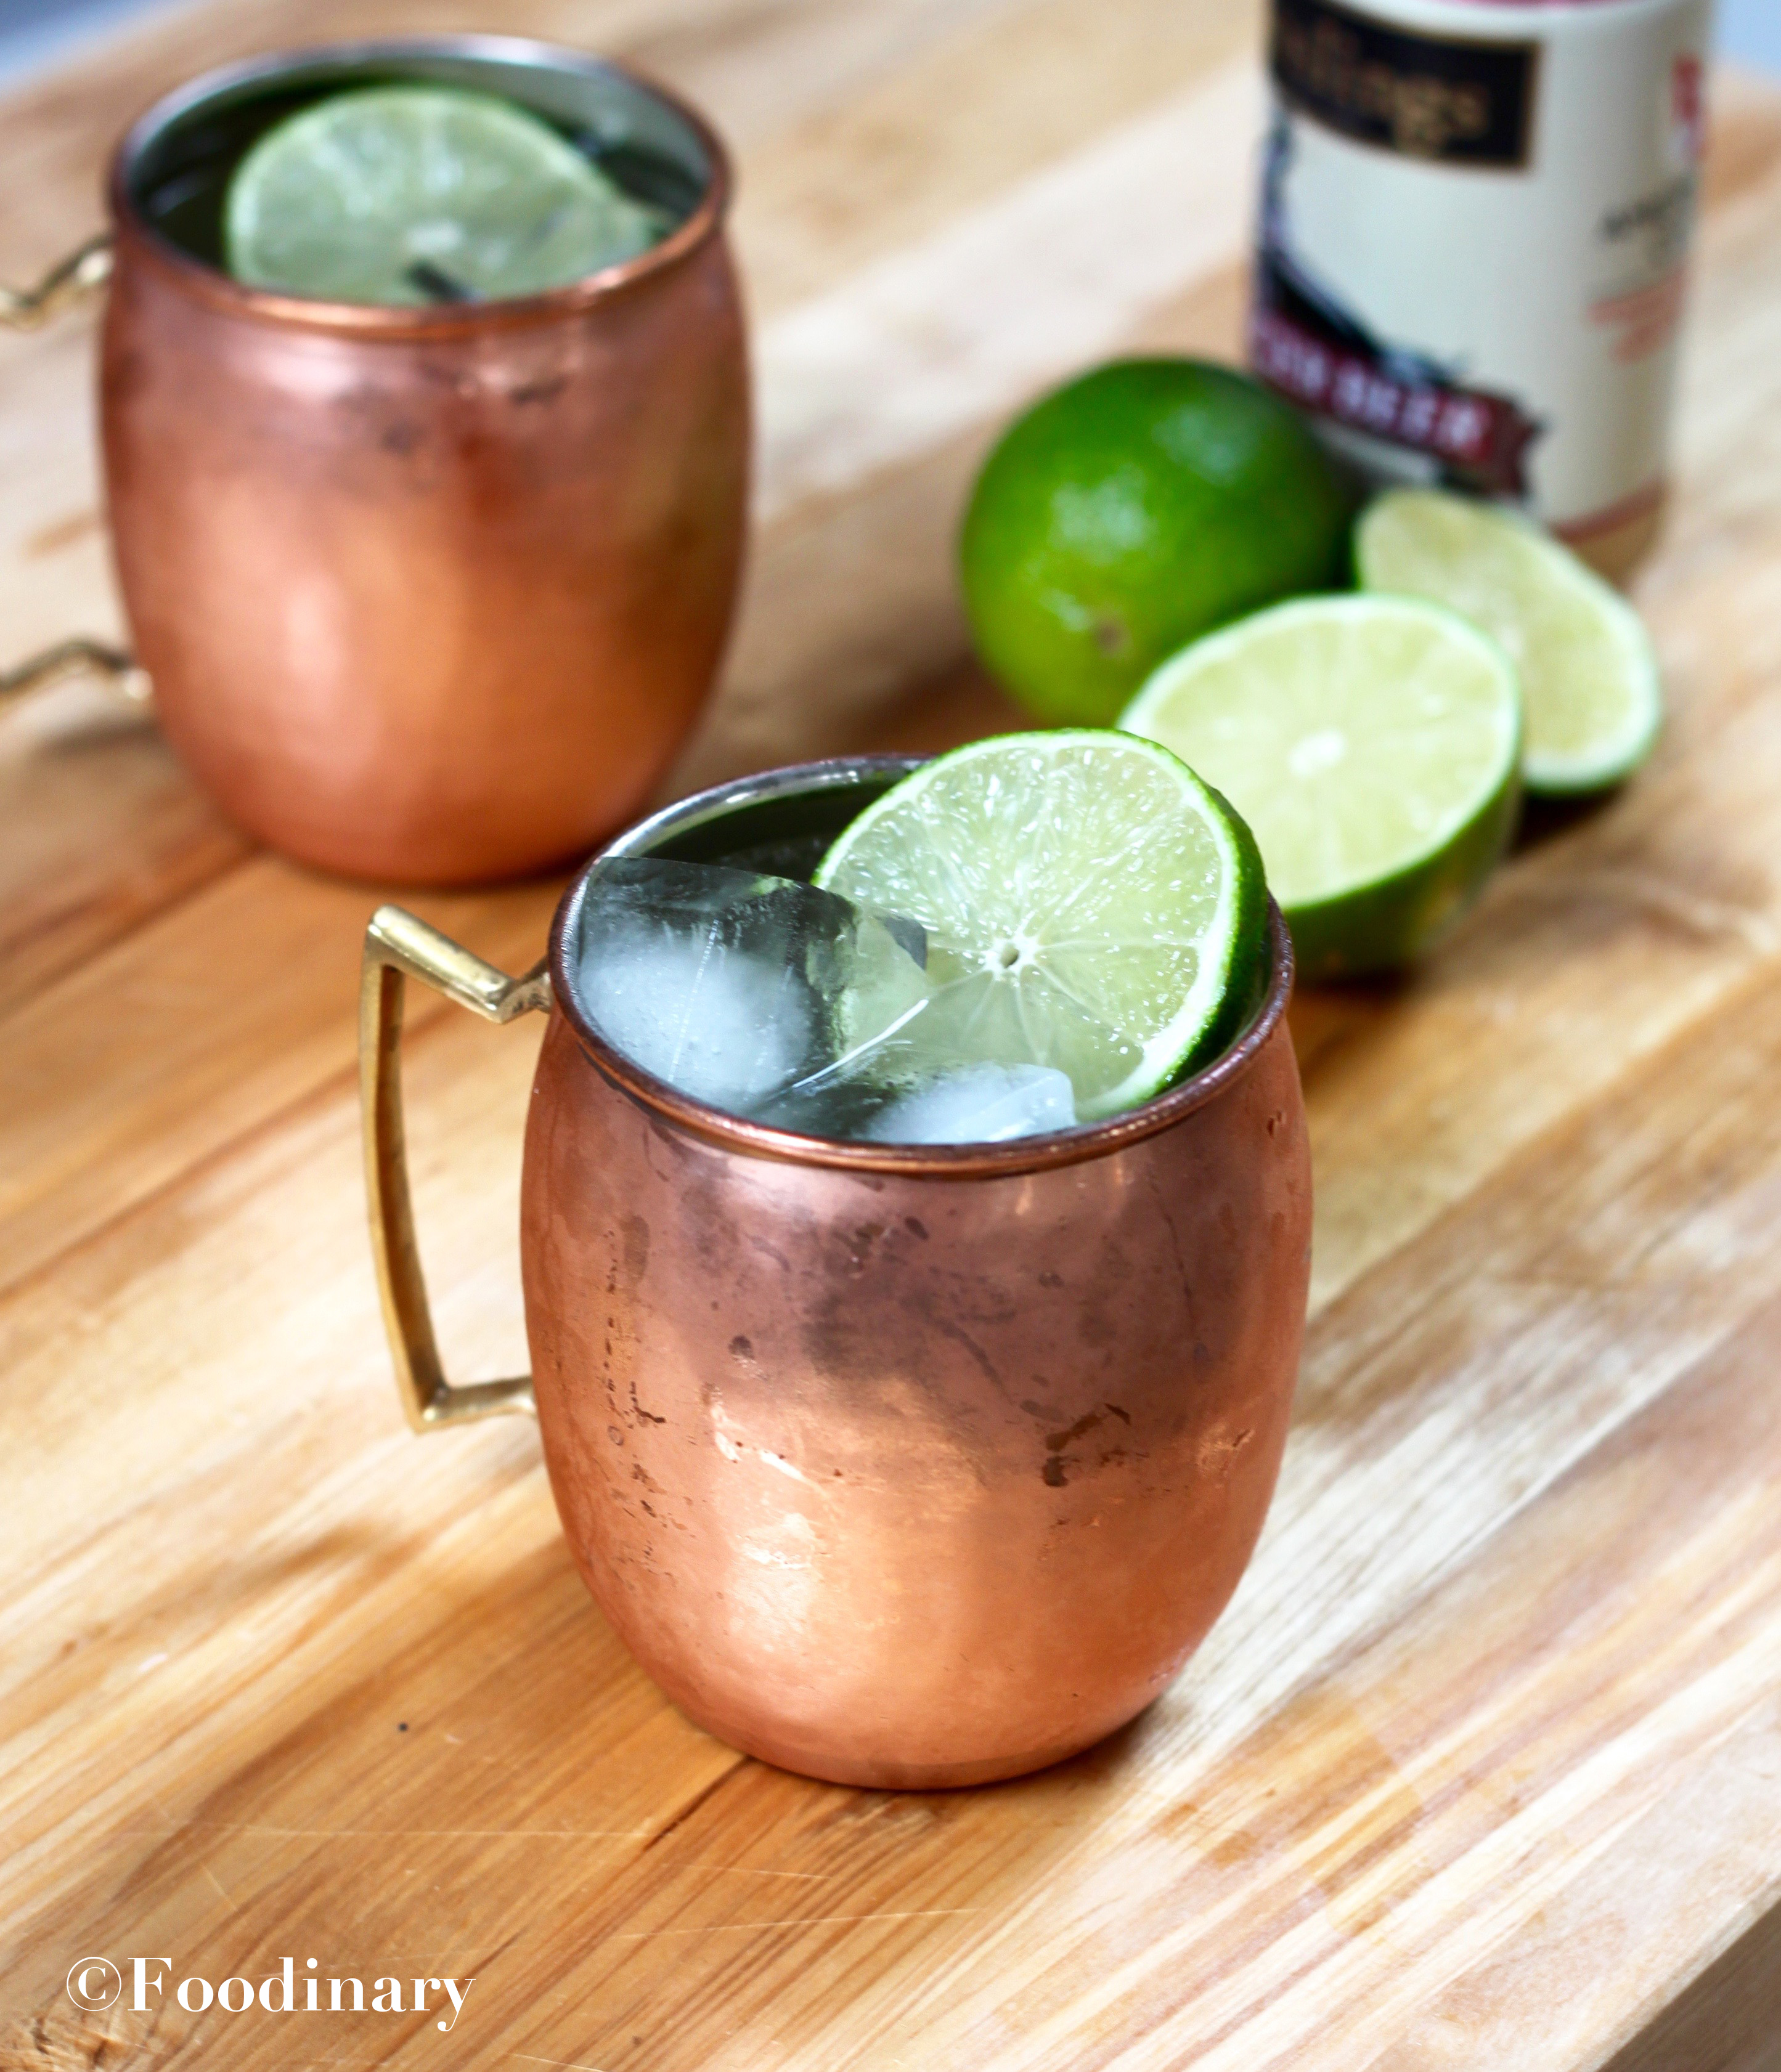 Foodinary How To Make A Moscow Mule